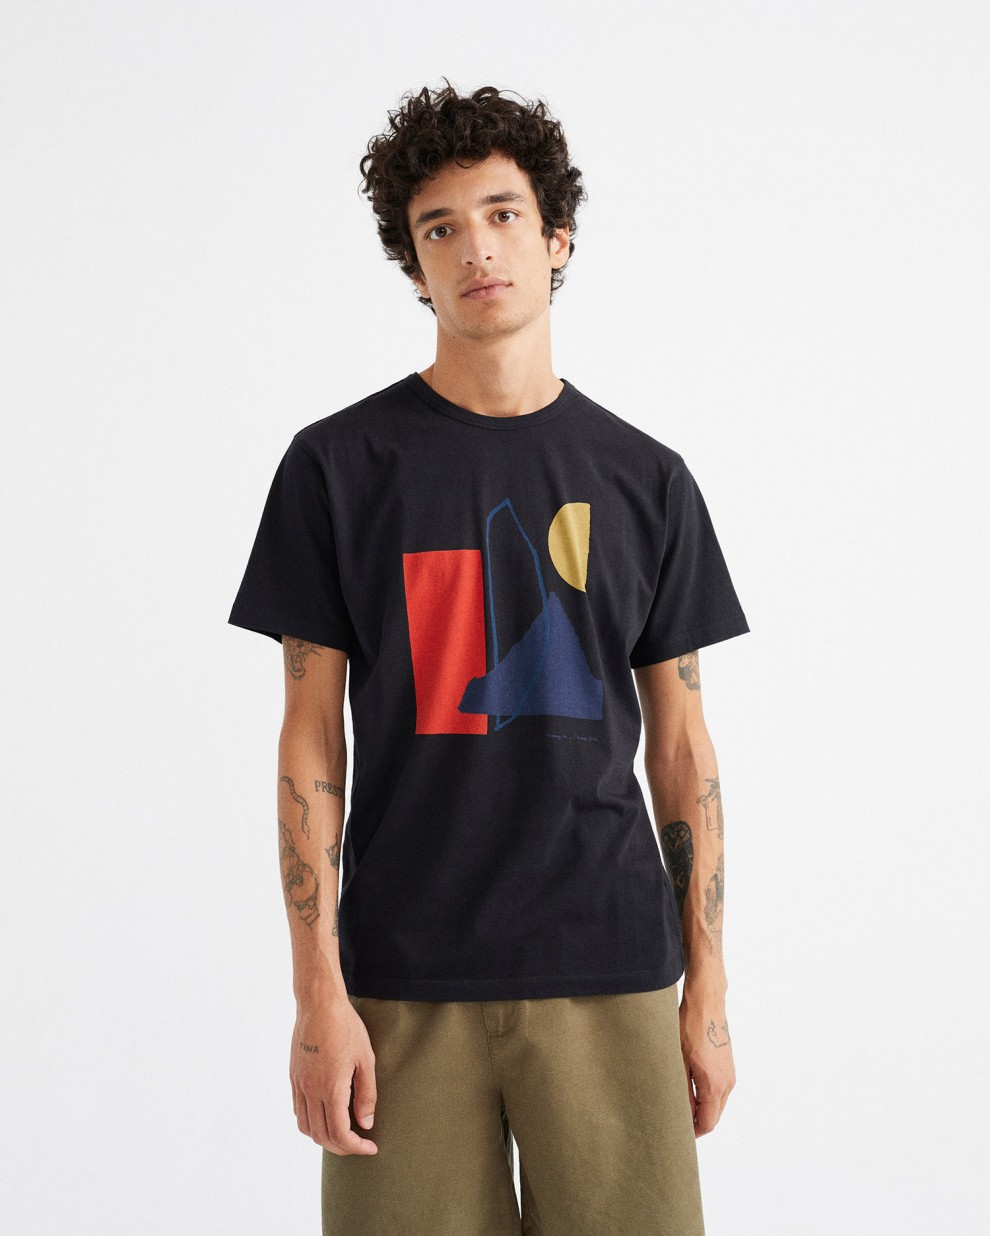 ABSTRACT BLACK T-SHIRT